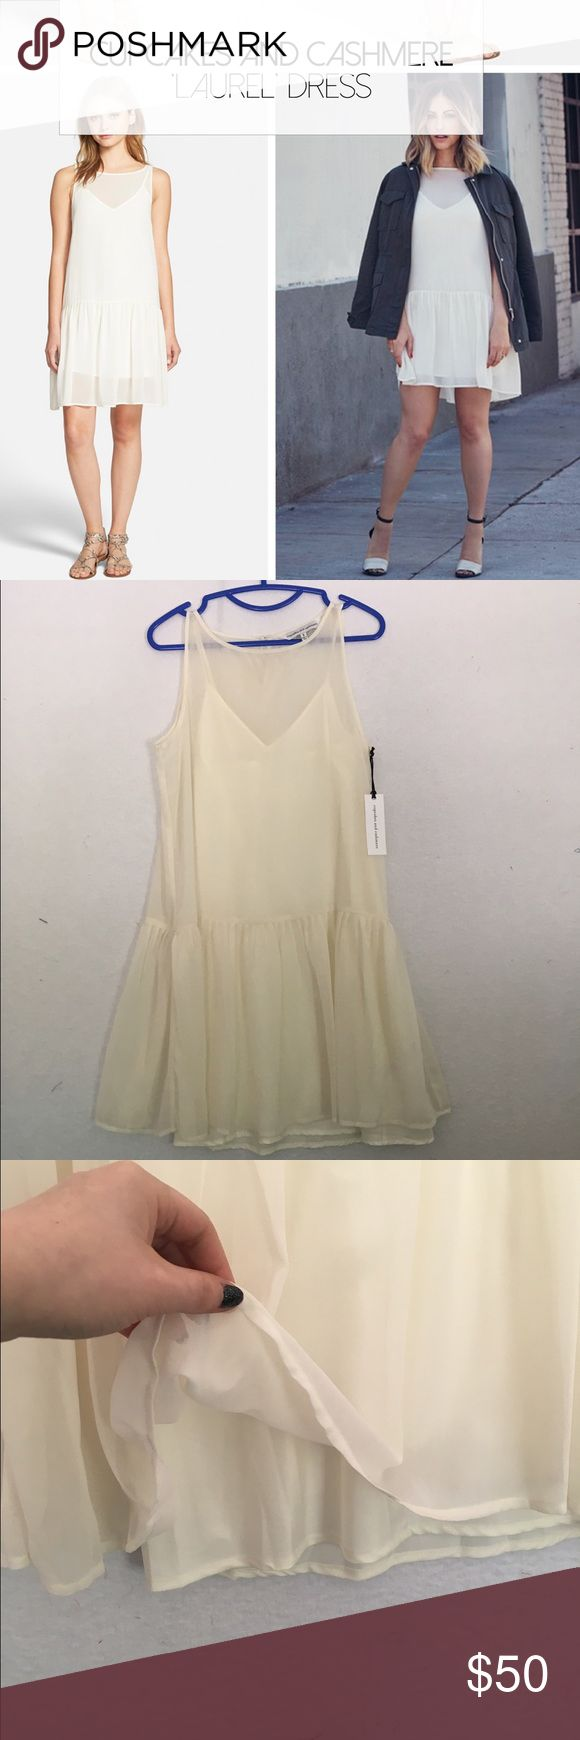 NWT Cupcakes & Cashmere Nordstrom White Dress White / Cream NWT Dropwaist chiffon dress. Perfect condition! From Nordstrom but sold out. Sheer but has a liner. Nordstrom Dresses Strapless